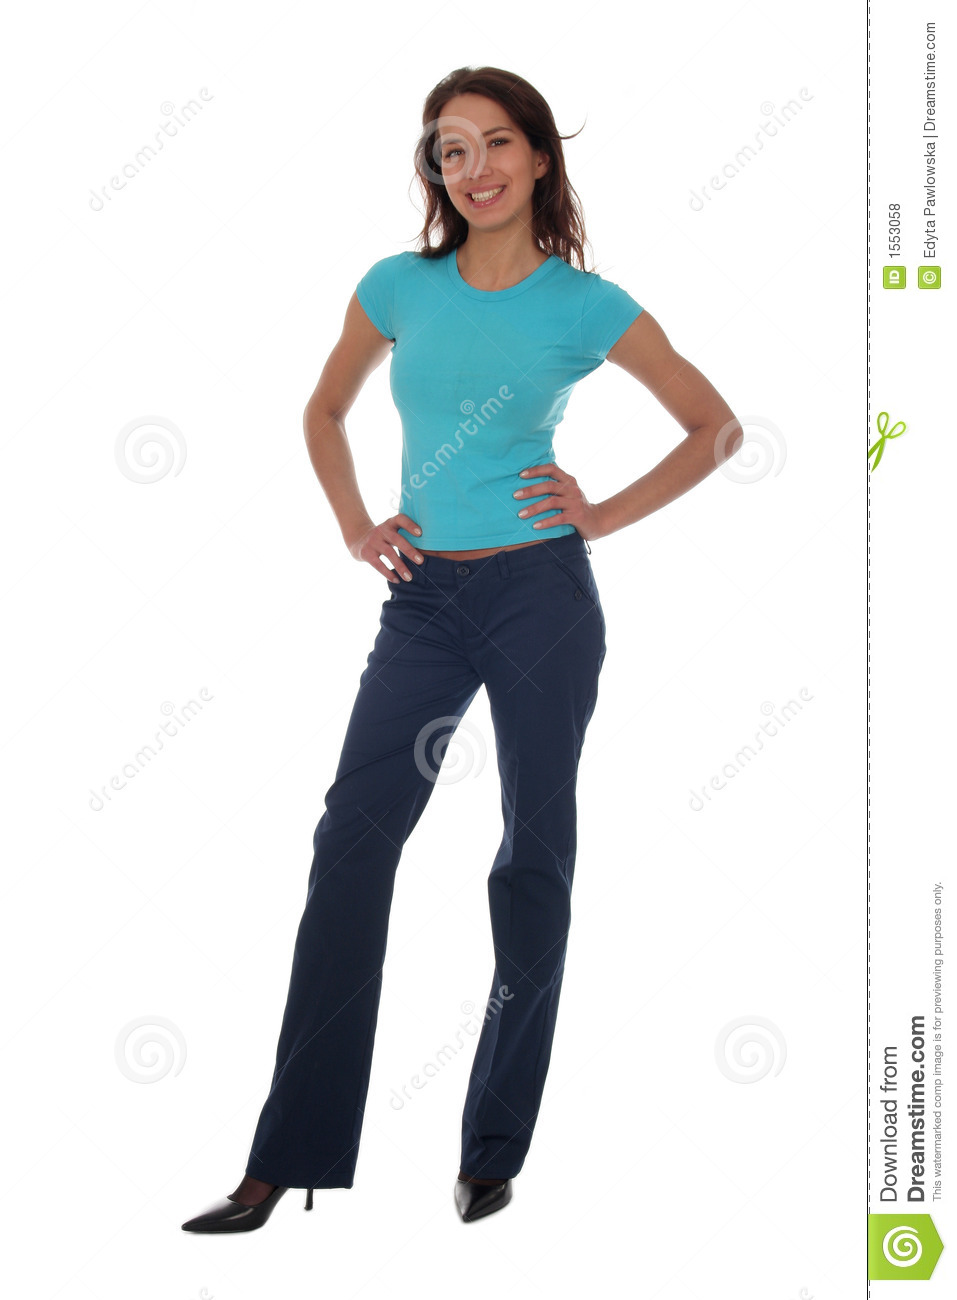 woman standing stock photo 1553058 megapixl